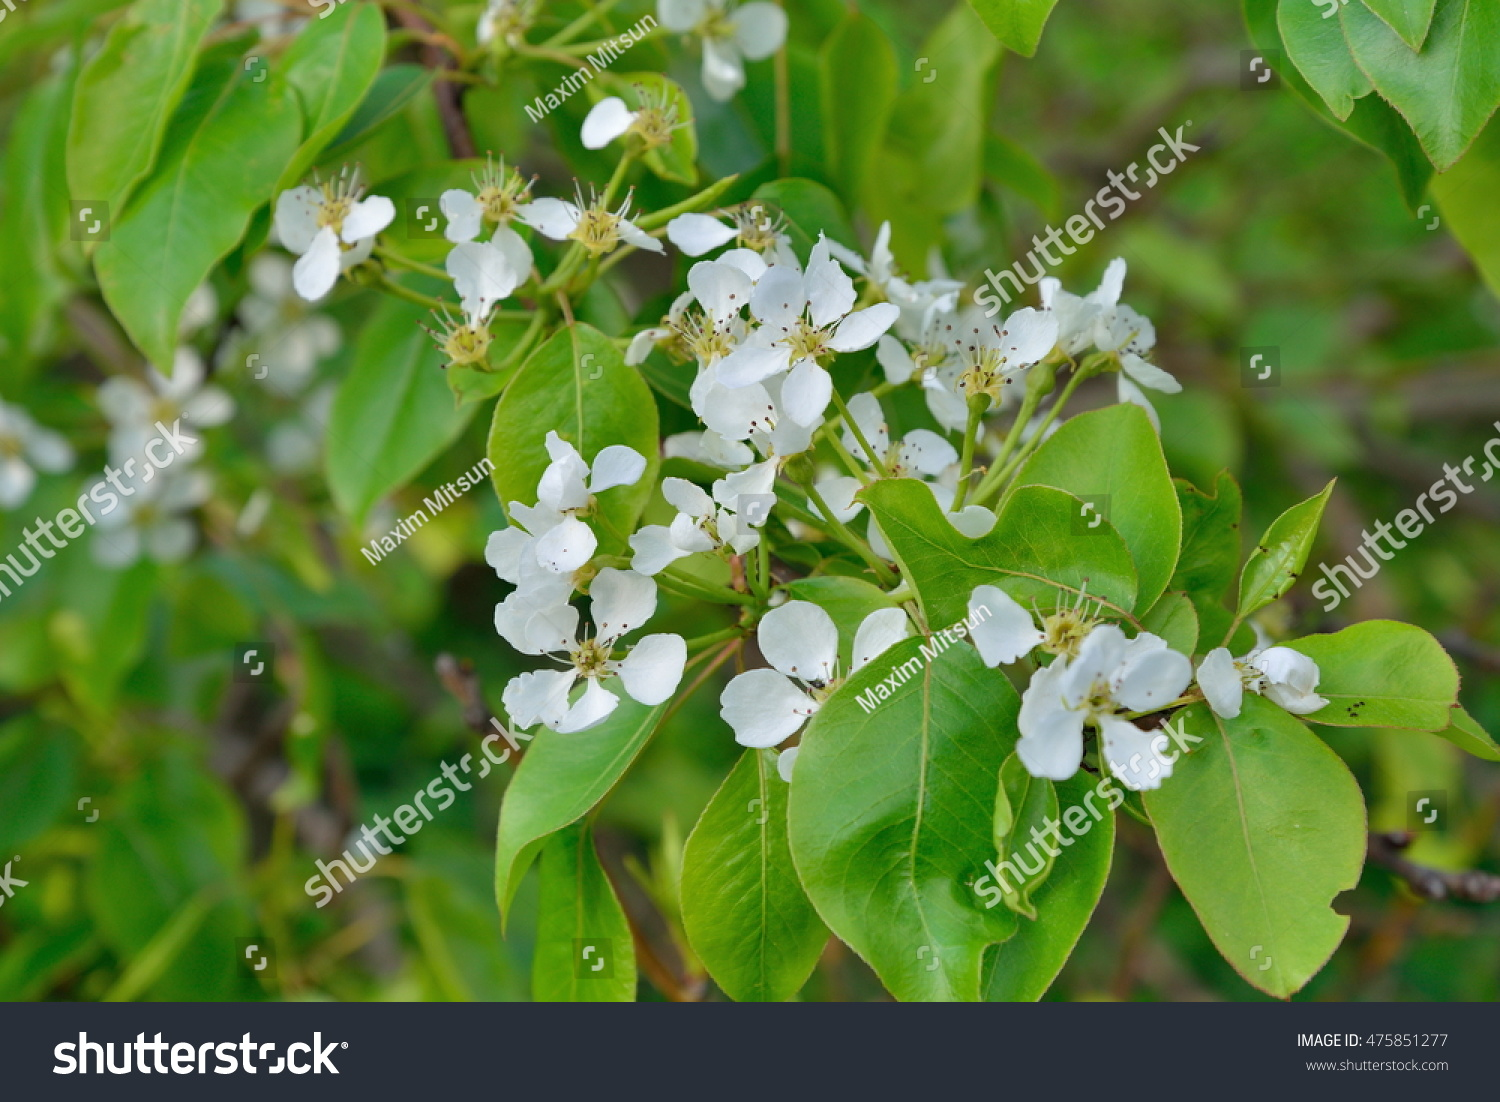 Gardenias Cape Jasmine Fragrant White Flowers In Thailand Ez Canvas